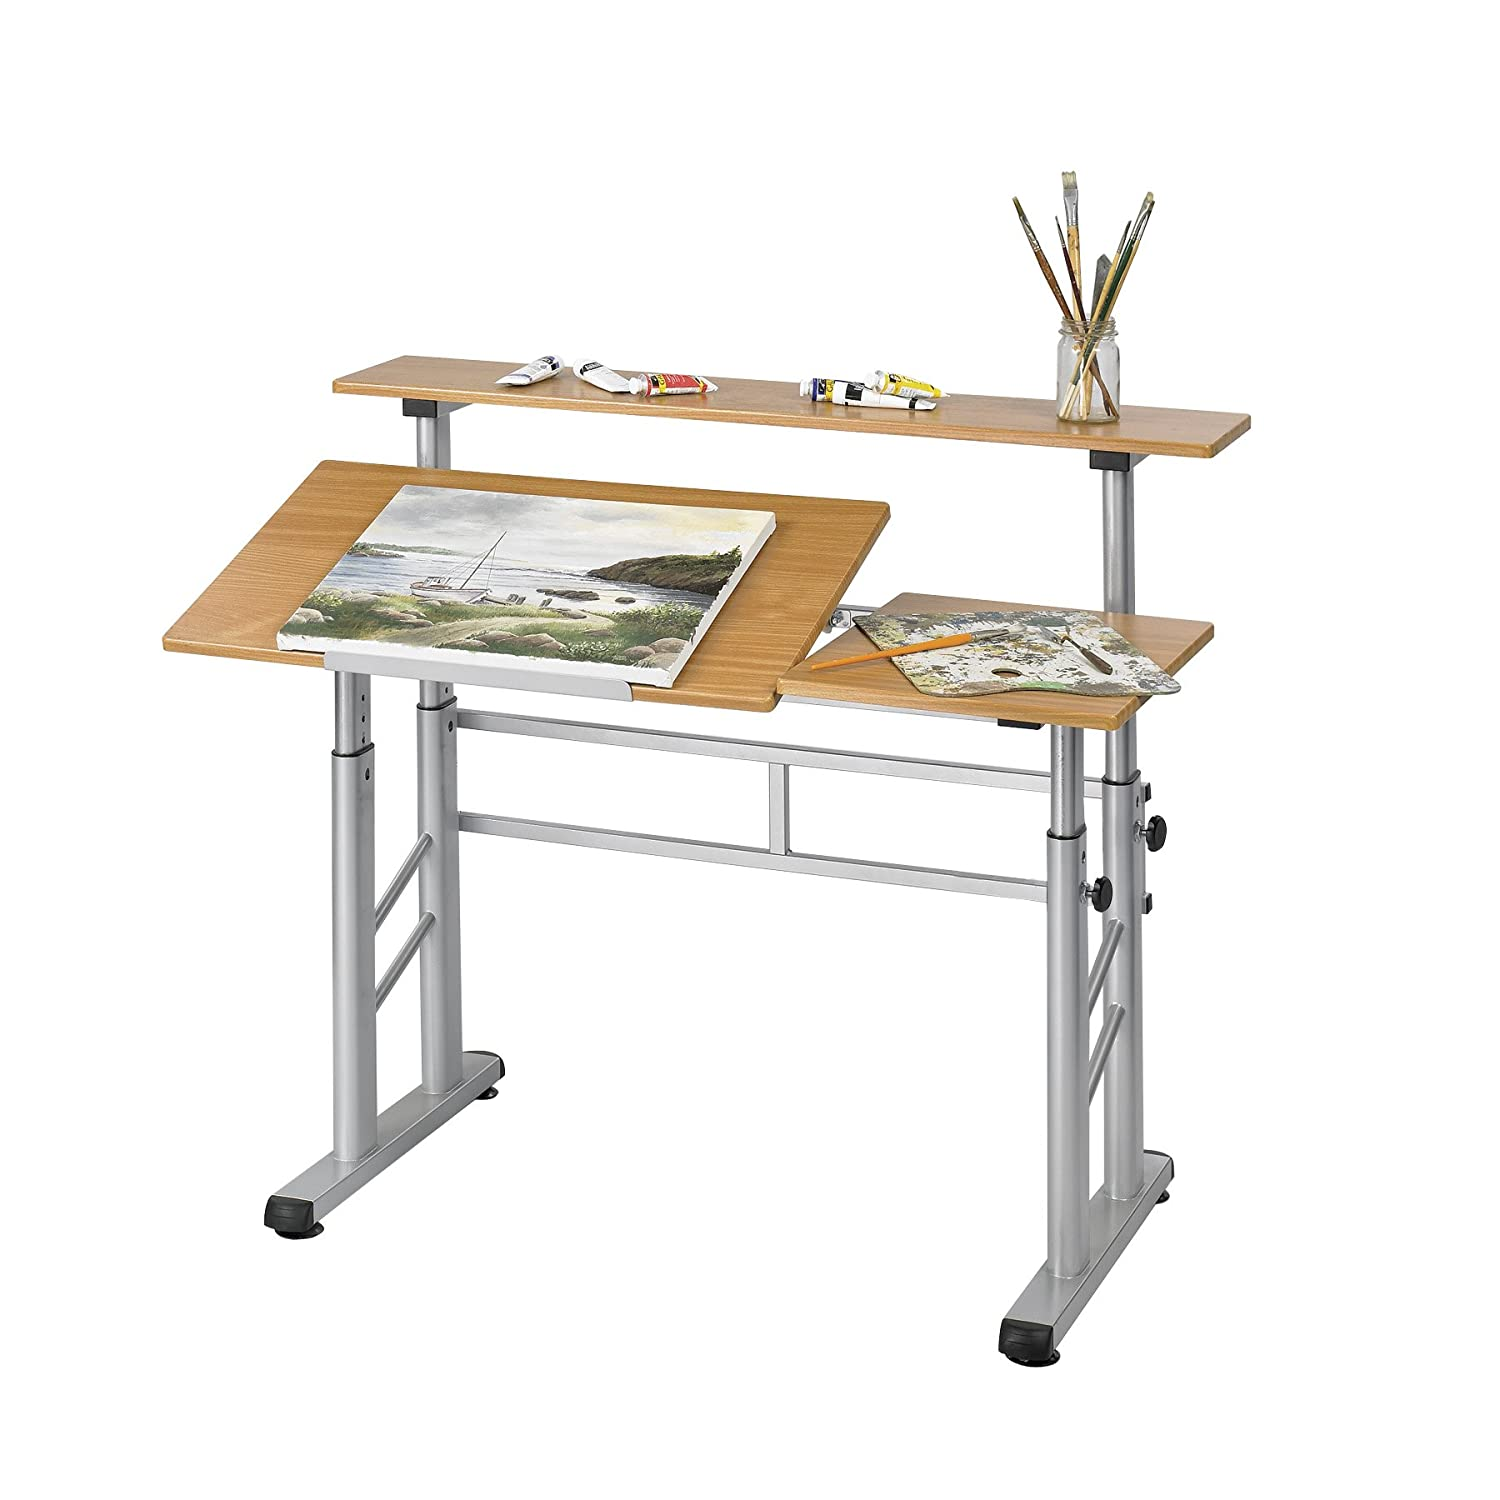 Drafting table dimensions - Amazon Com Safco Products 3965mo Split Level Drafting Table Height Adjustable Medium Oak Kitchen Dining